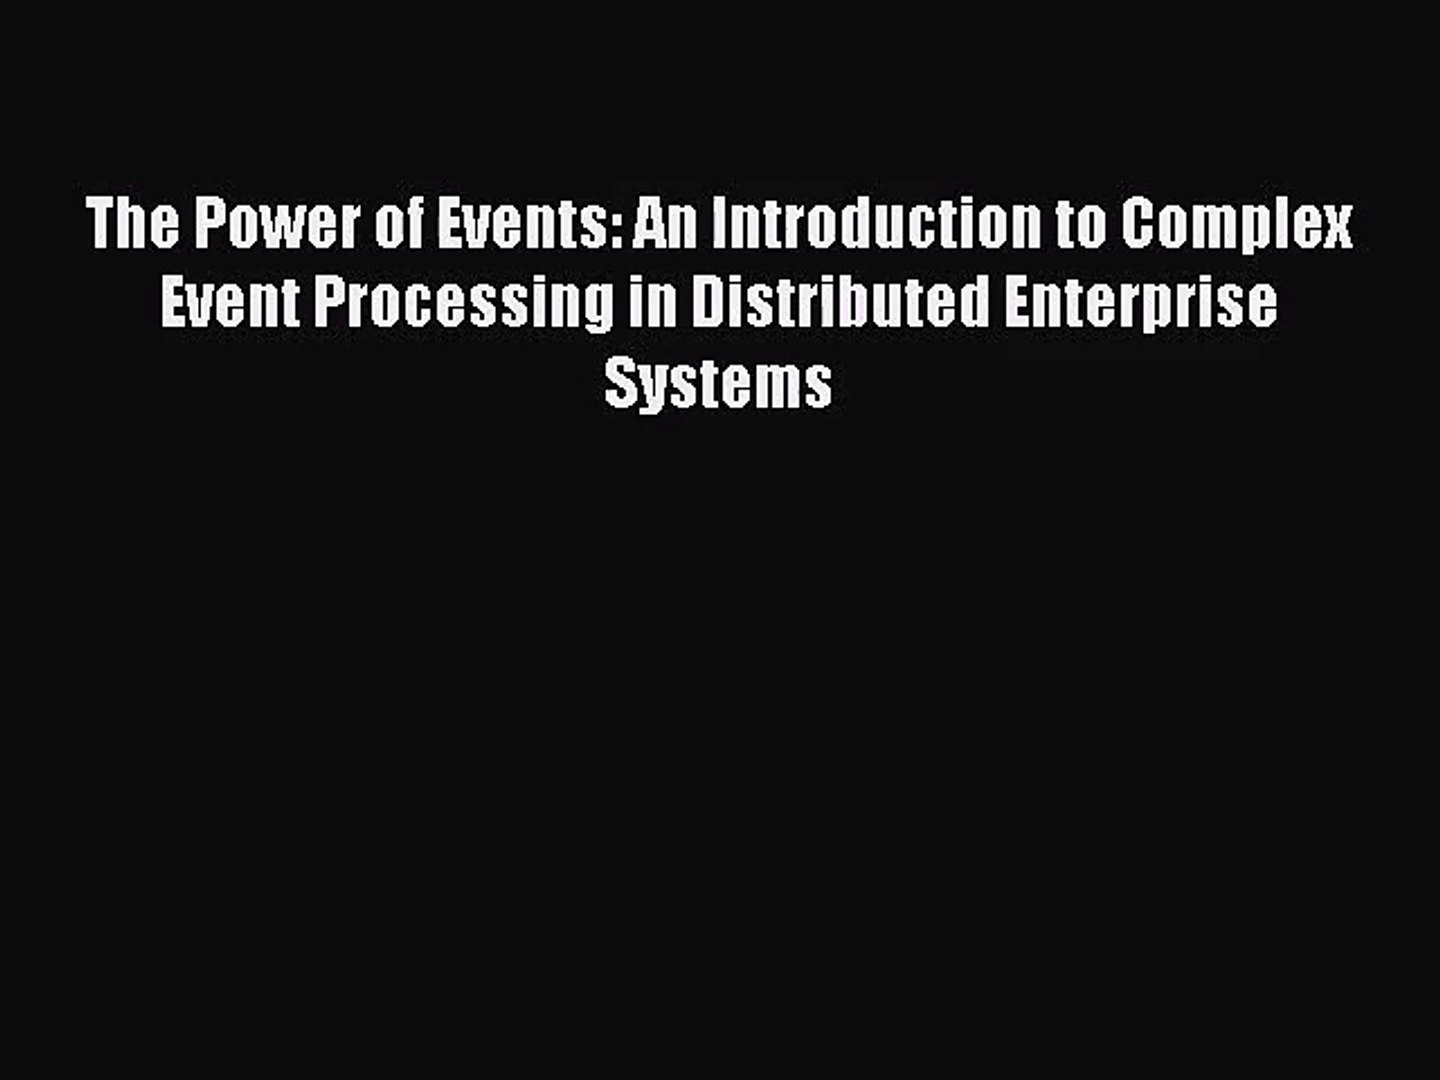 [PDF Download] The Power of Events: An Introduction to Complex Event Processing in Distributed